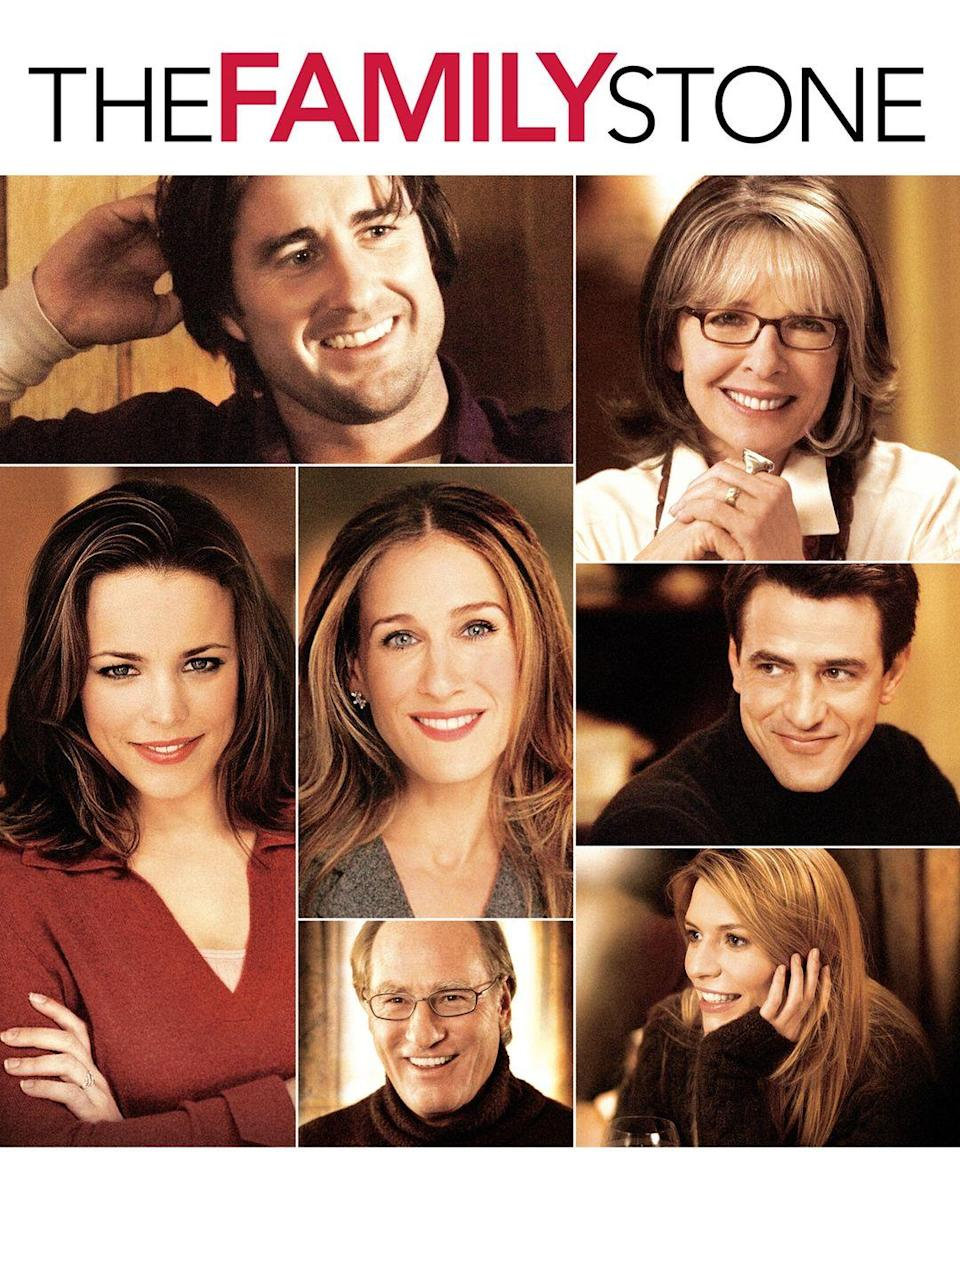 """<p>This 2005 Christmas flick features an all-star cast that includes Sarah Jessica Parker, Luke Wilson and Diane Keaton.</p><p><a class=""""link rapid-noclick-resp"""" href=""""https://www.amazon.com/Family-Stone-Claire-Danes/dp/B000I9X6T0/?tag=syn-yahoo-20&ascsubtag=%5Bartid%7C10055.g.1315%5Bsrc%7Cyahoo-us"""" rel=""""nofollow noopener"""" target=""""_blank"""" data-ylk=""""slk:WATCH NOW"""">WATCH NOW</a> </p>"""